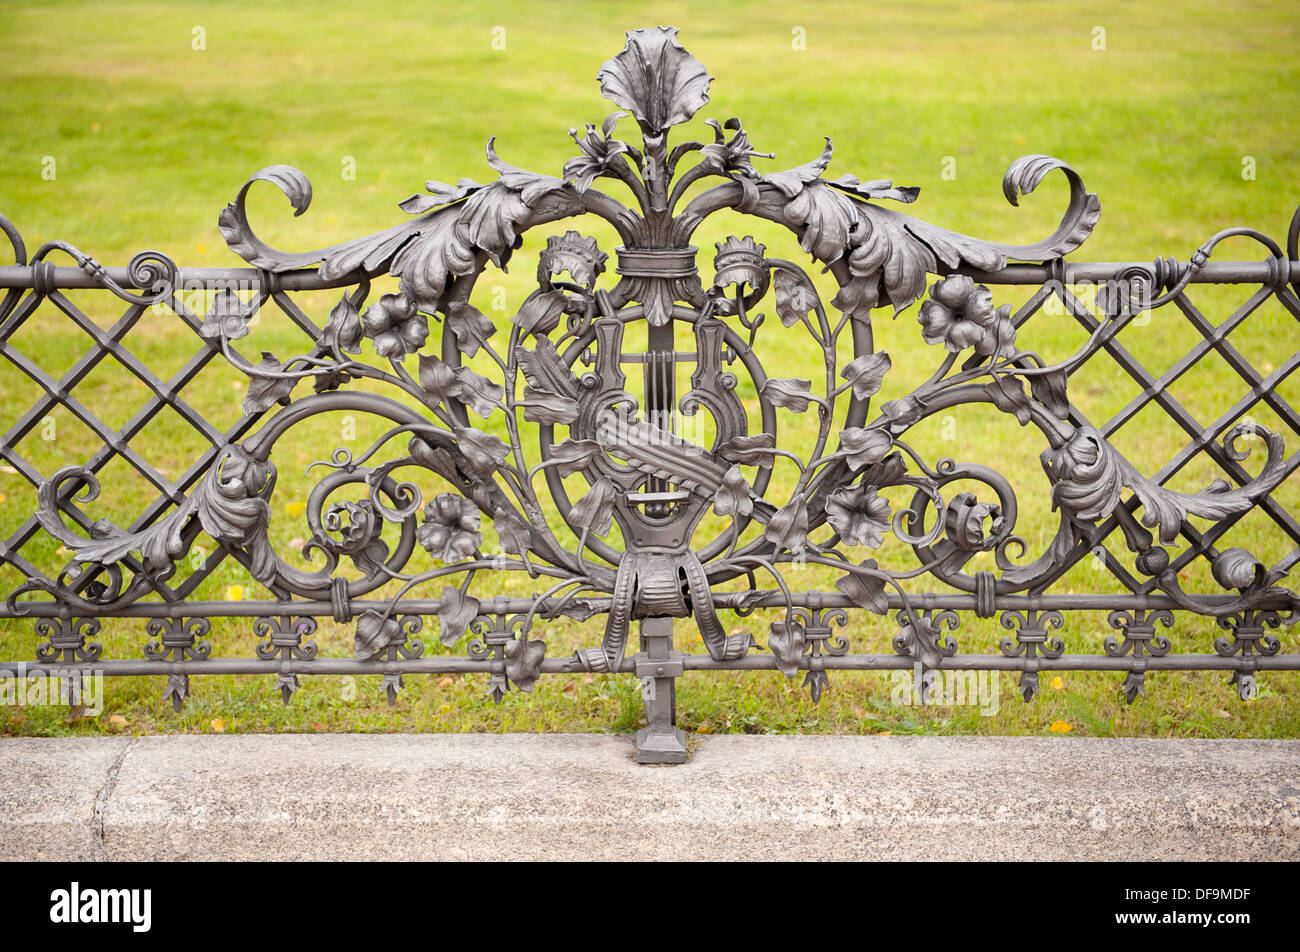 Ornamental Fence Stock Photos & Ornamental Fence Stock Images - Alamy